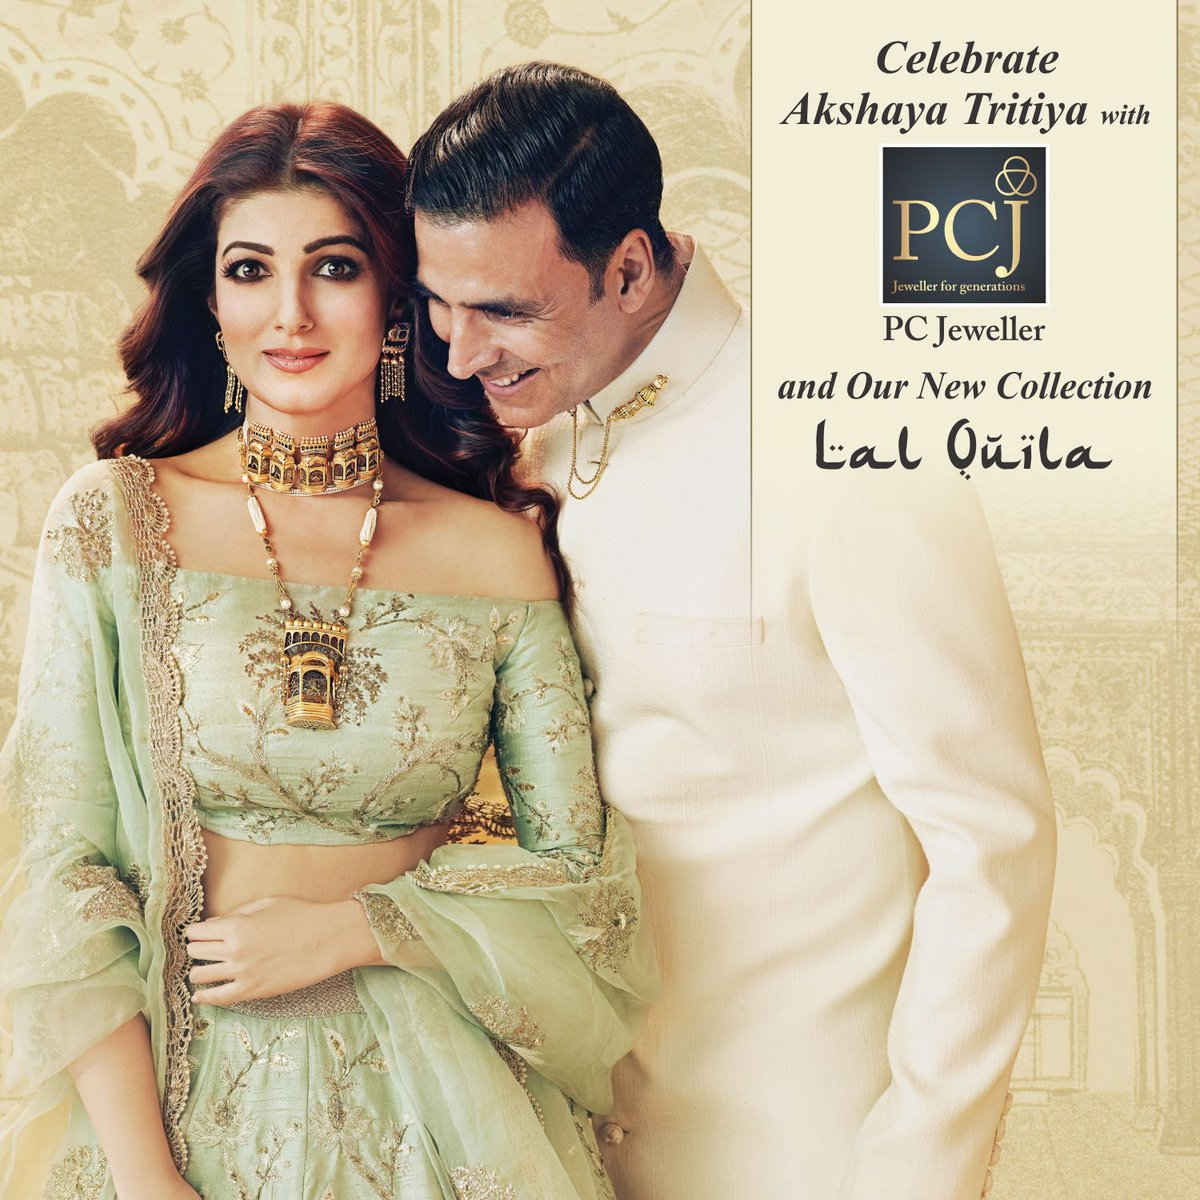 Wishing all our patrons Happy #AkshayaTritiya. Like our brand ambassadors @akshaykumar &amp; @mrsfunnybones you too can own this magnificent #LalQuila collection. Avail flat 20% off on #Diamond #Jewellery and making charges of #Gold &amp; #Silver #Jewellery &amp; #Articles. <br>http://pic.twitter.com/ouHQ0jfOan